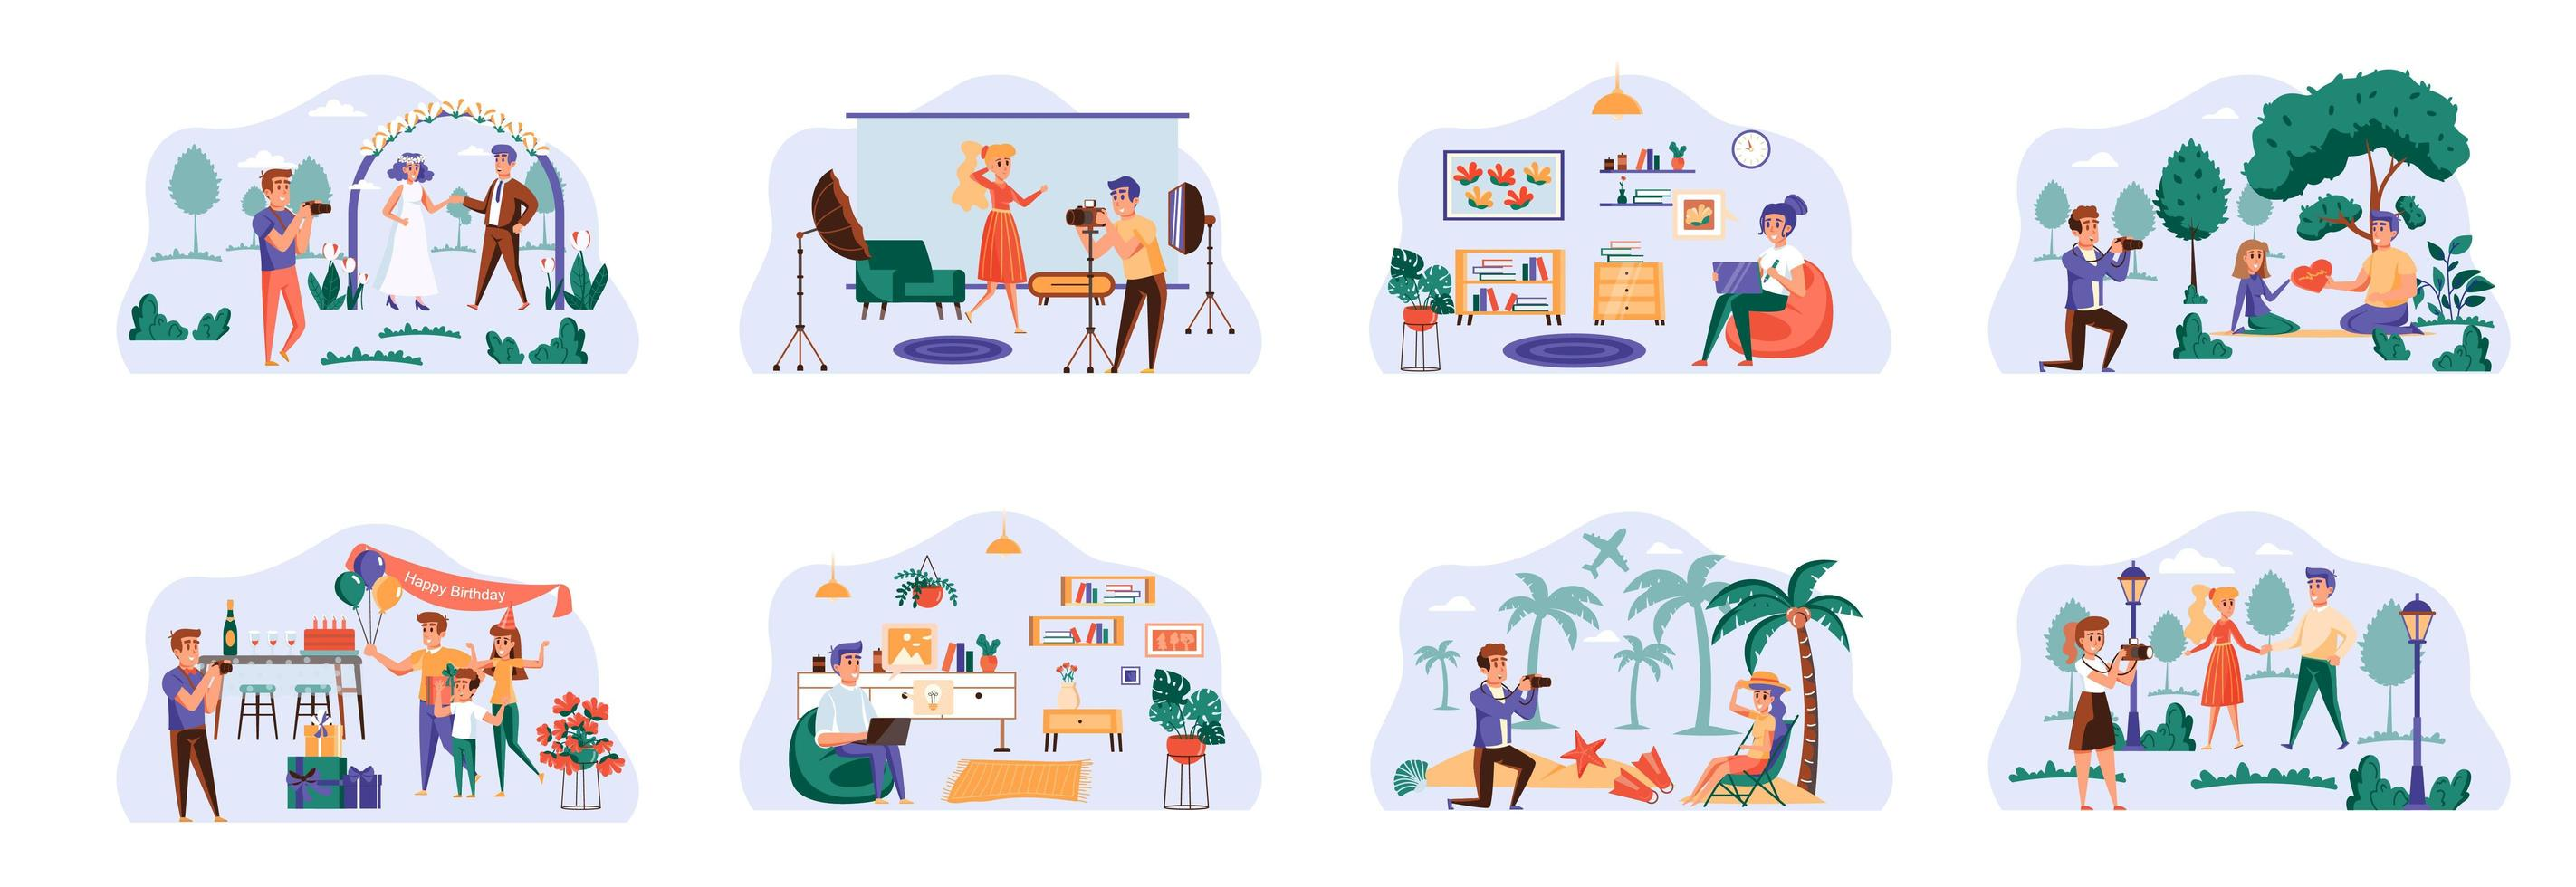 Designers and photographers bundle of scenes with people characters. vector